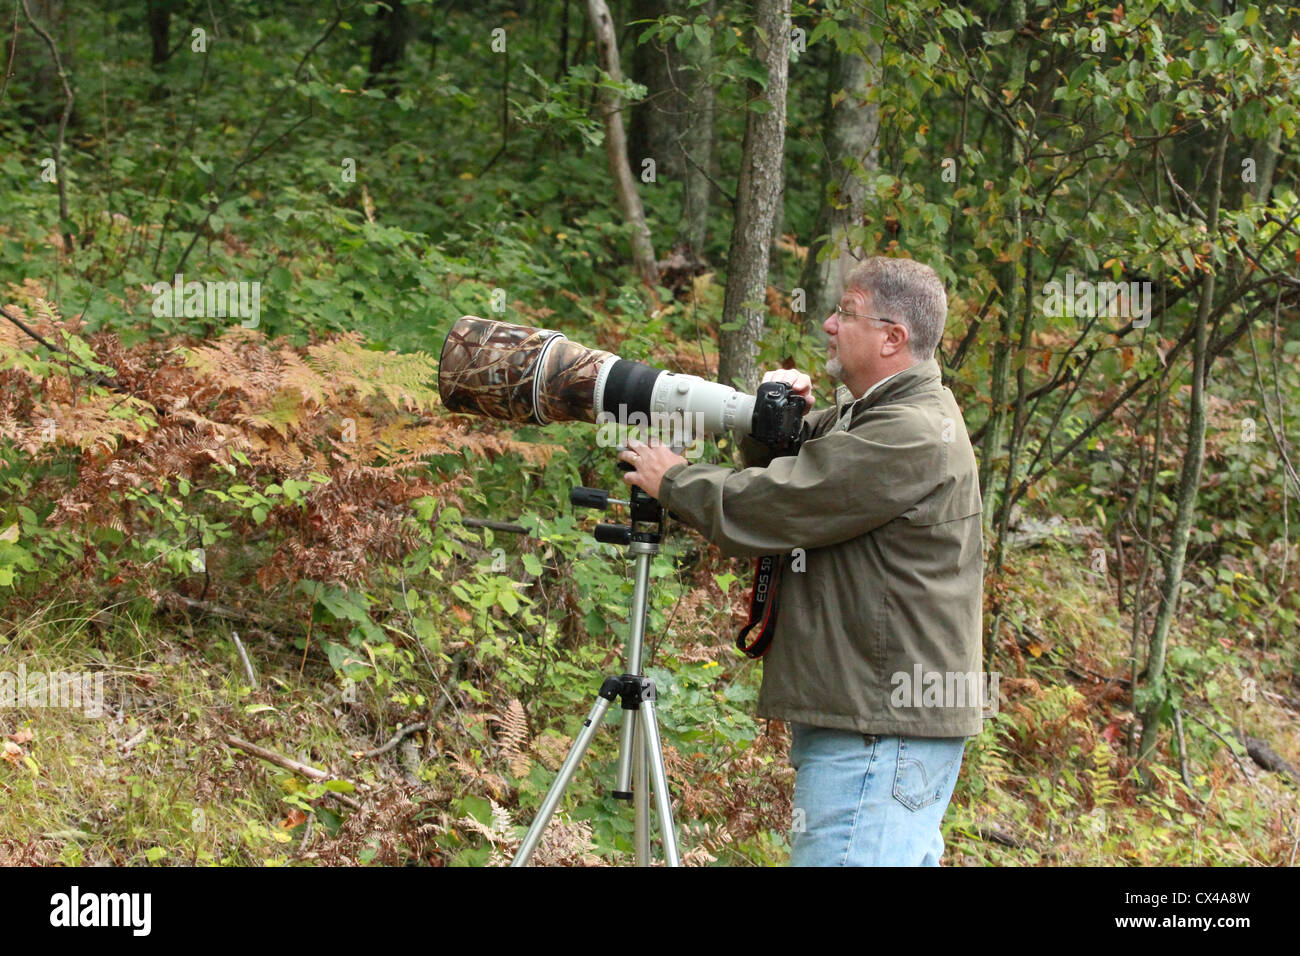 A professional photographer prepares to take a photo with a telephoto lens. - Stock Image